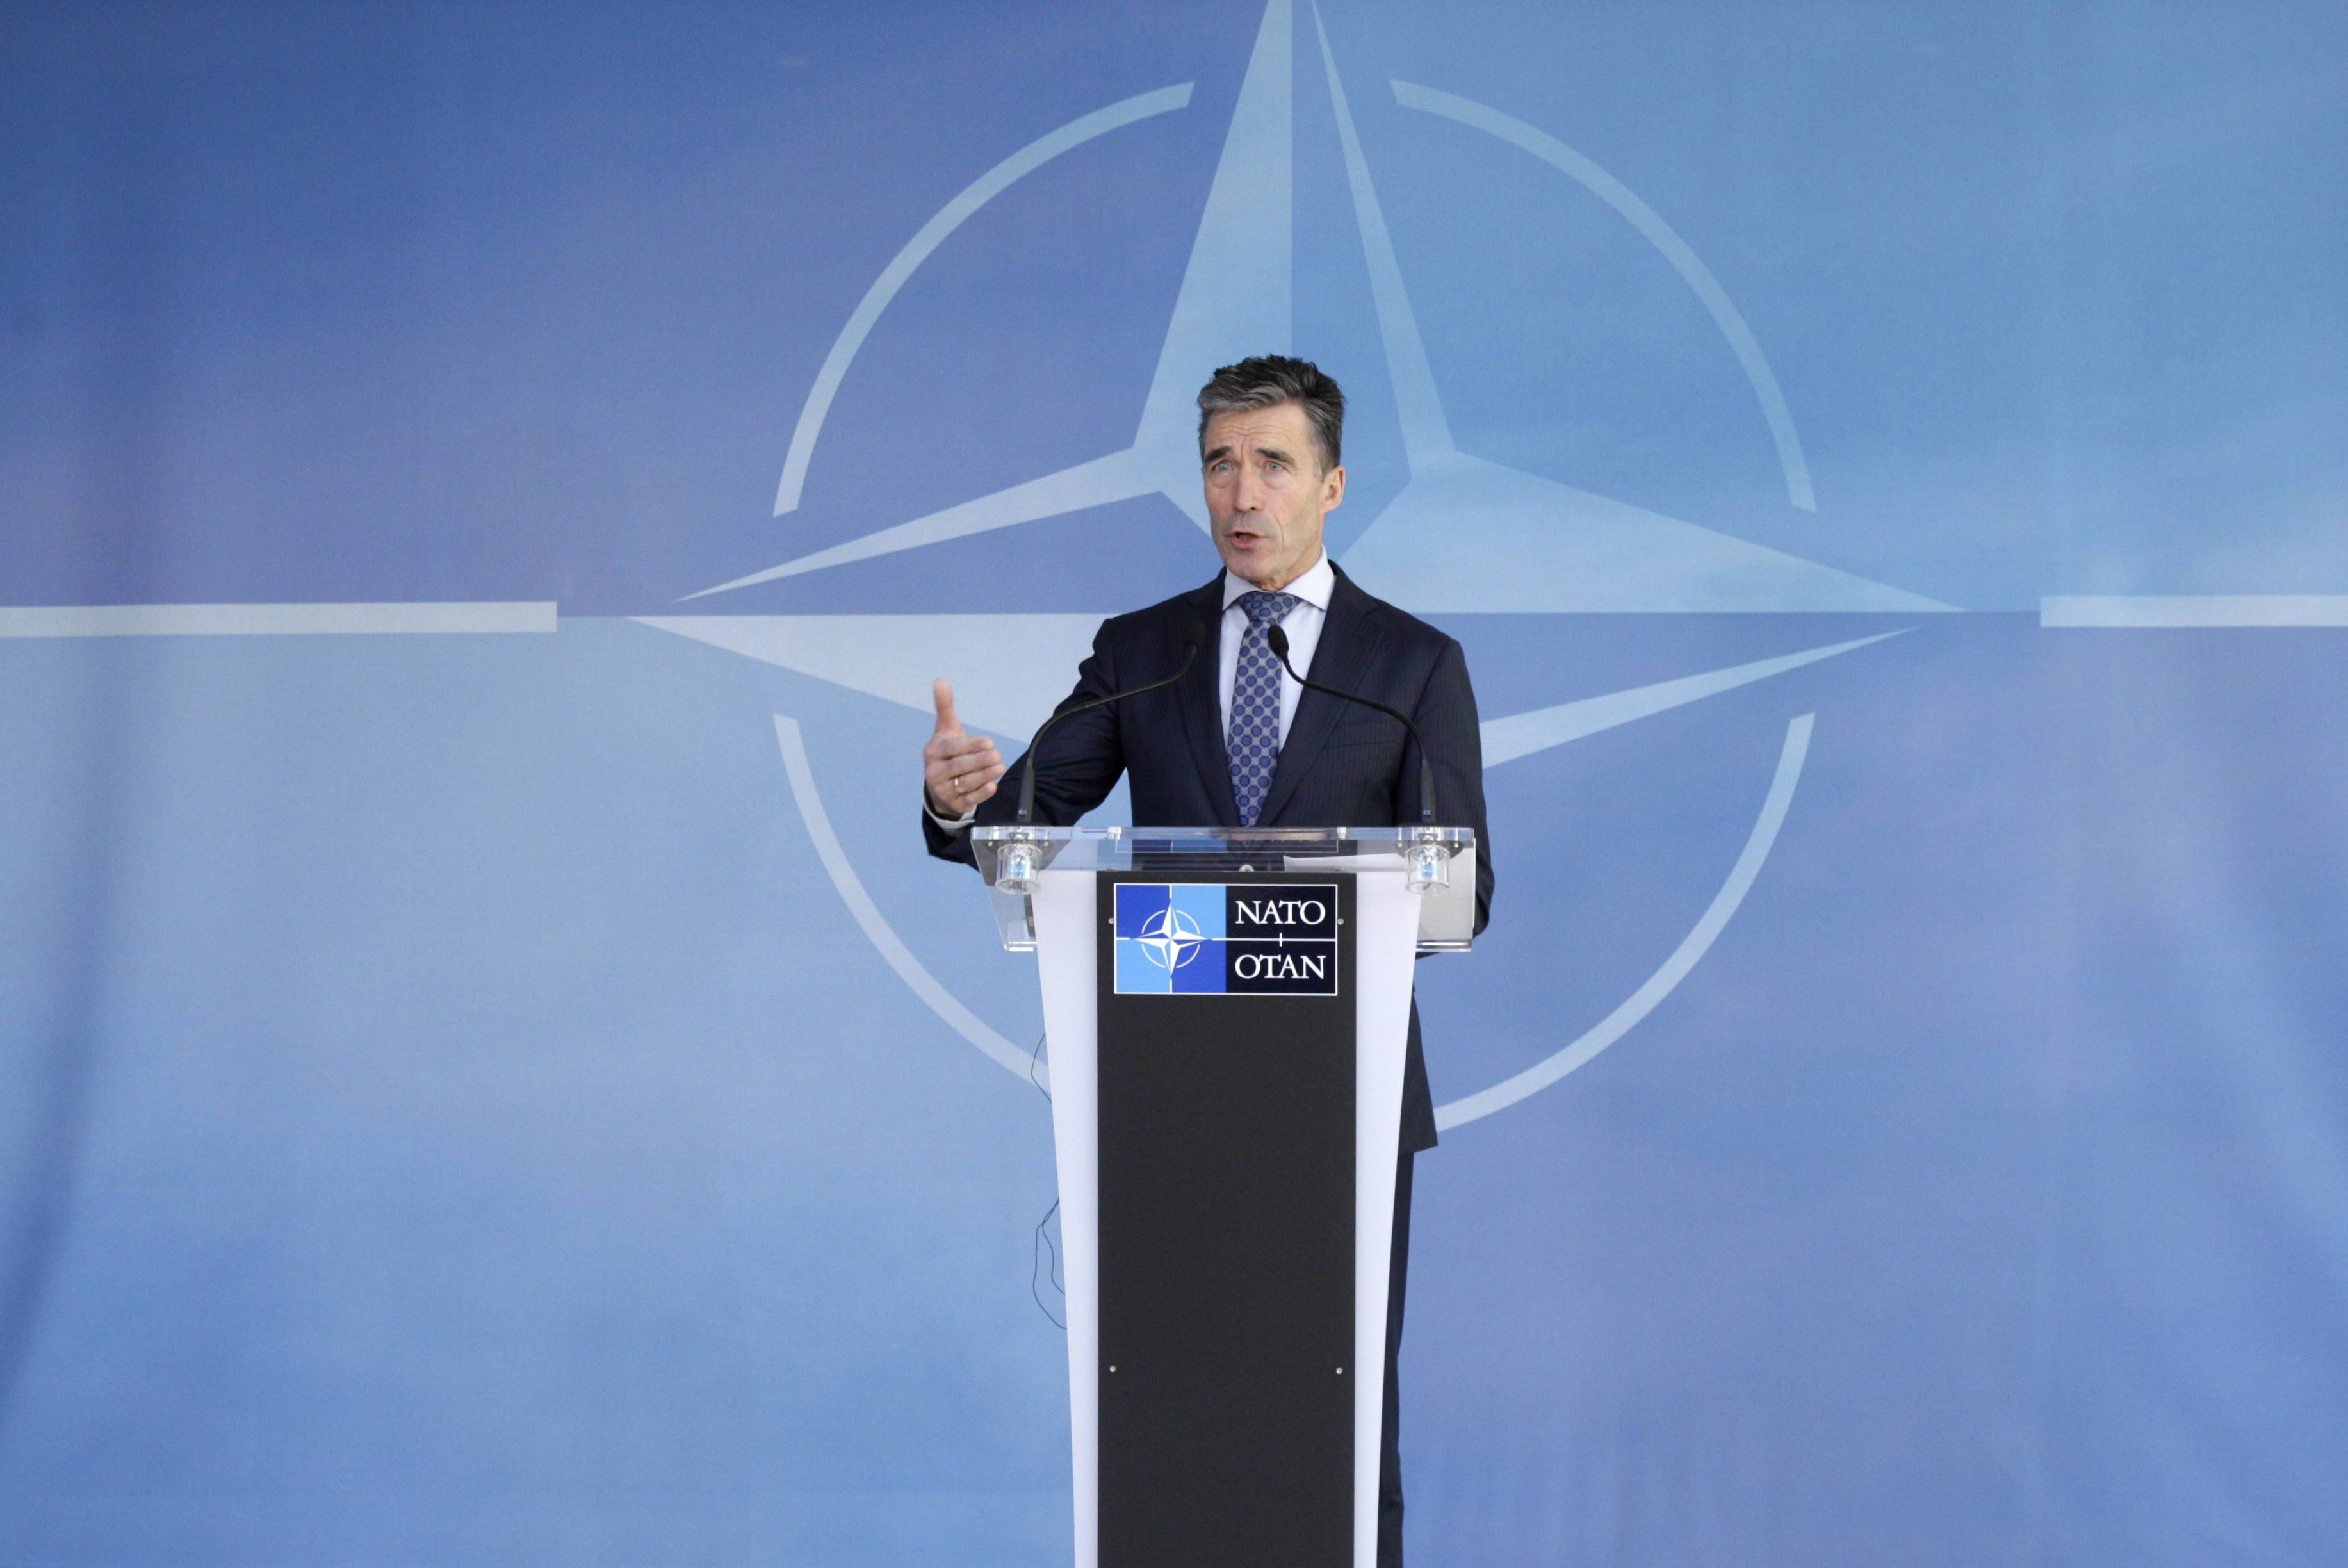 NATO Secretary General Anders Fogh Rasmussen addresses the media Wednesday after an NATO Ambassadors Council at NATO headquarters in Brussels. NATO says it's reinforcing its military presence on eastern border on sea, land and in the air.